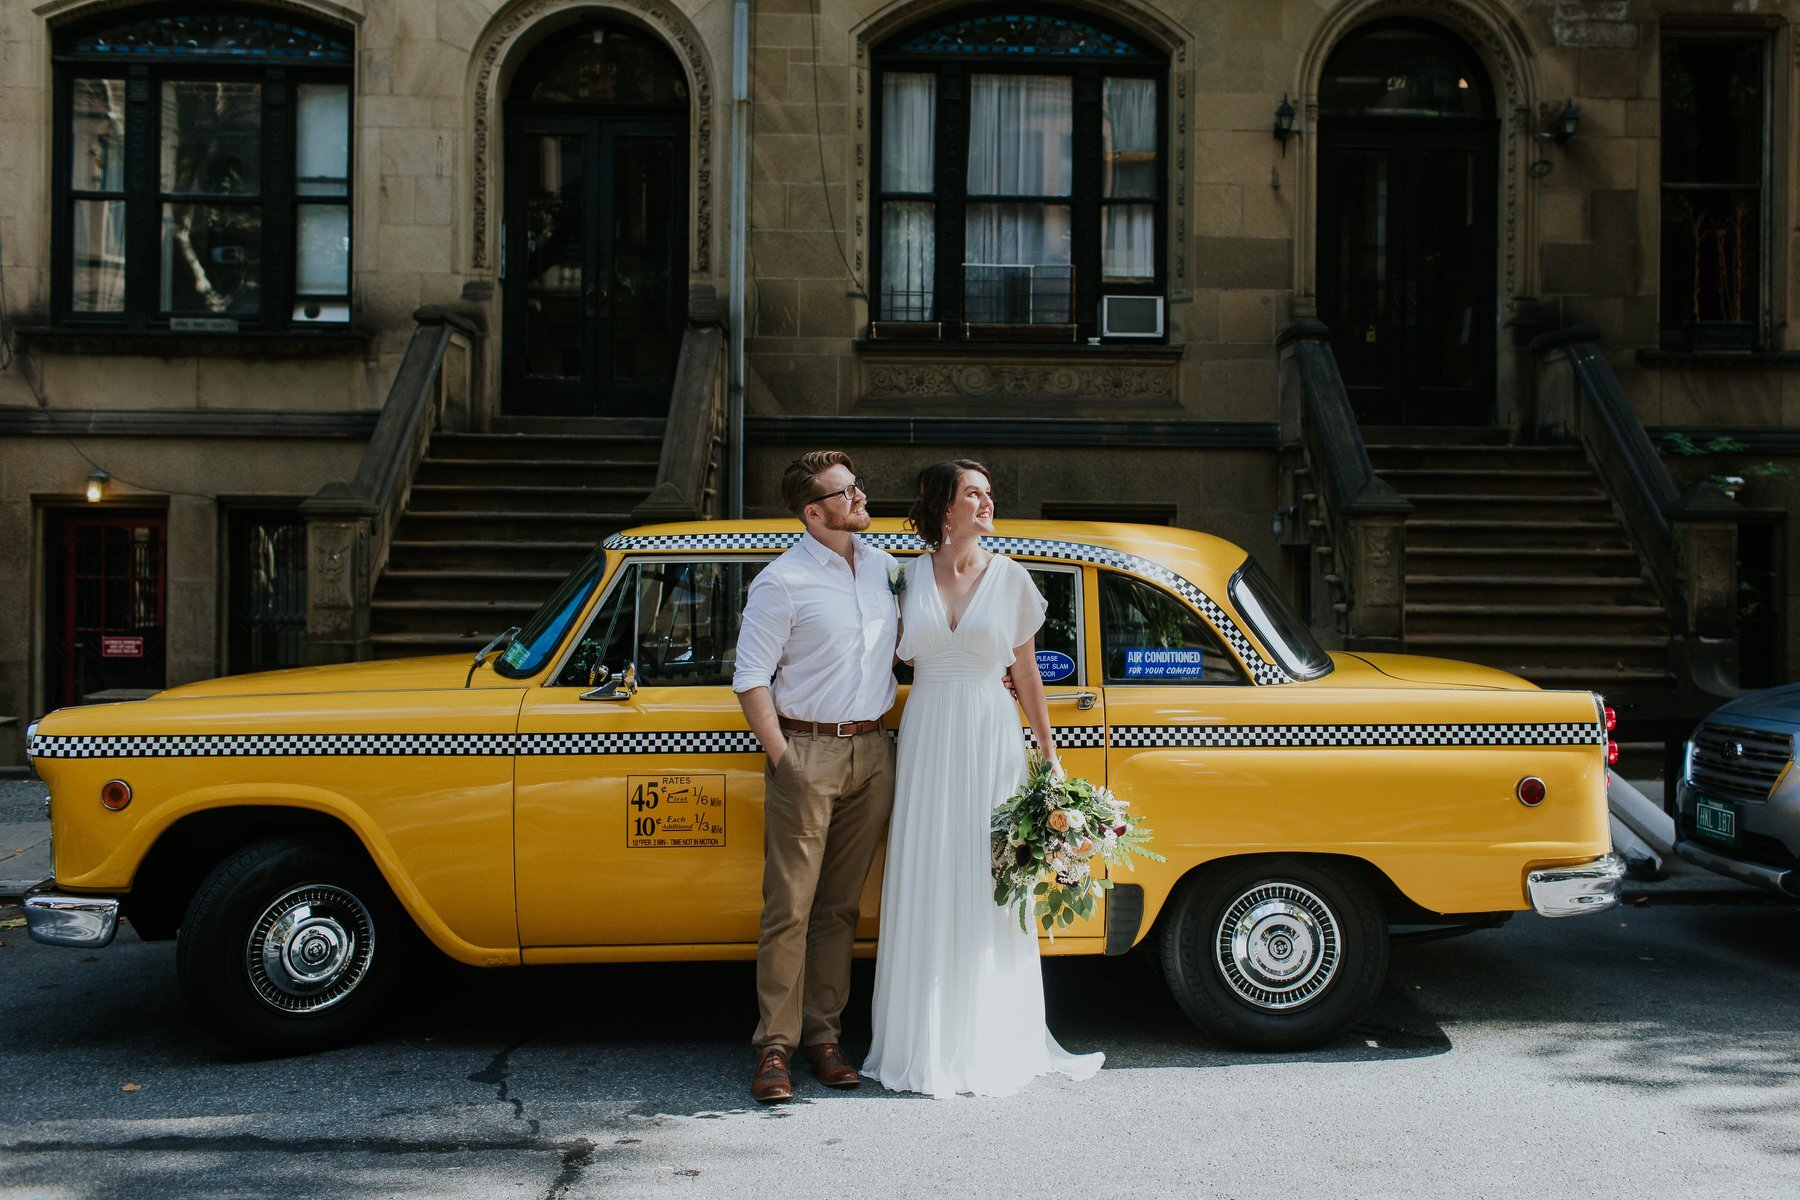 Married in New York City - Amy & Mark